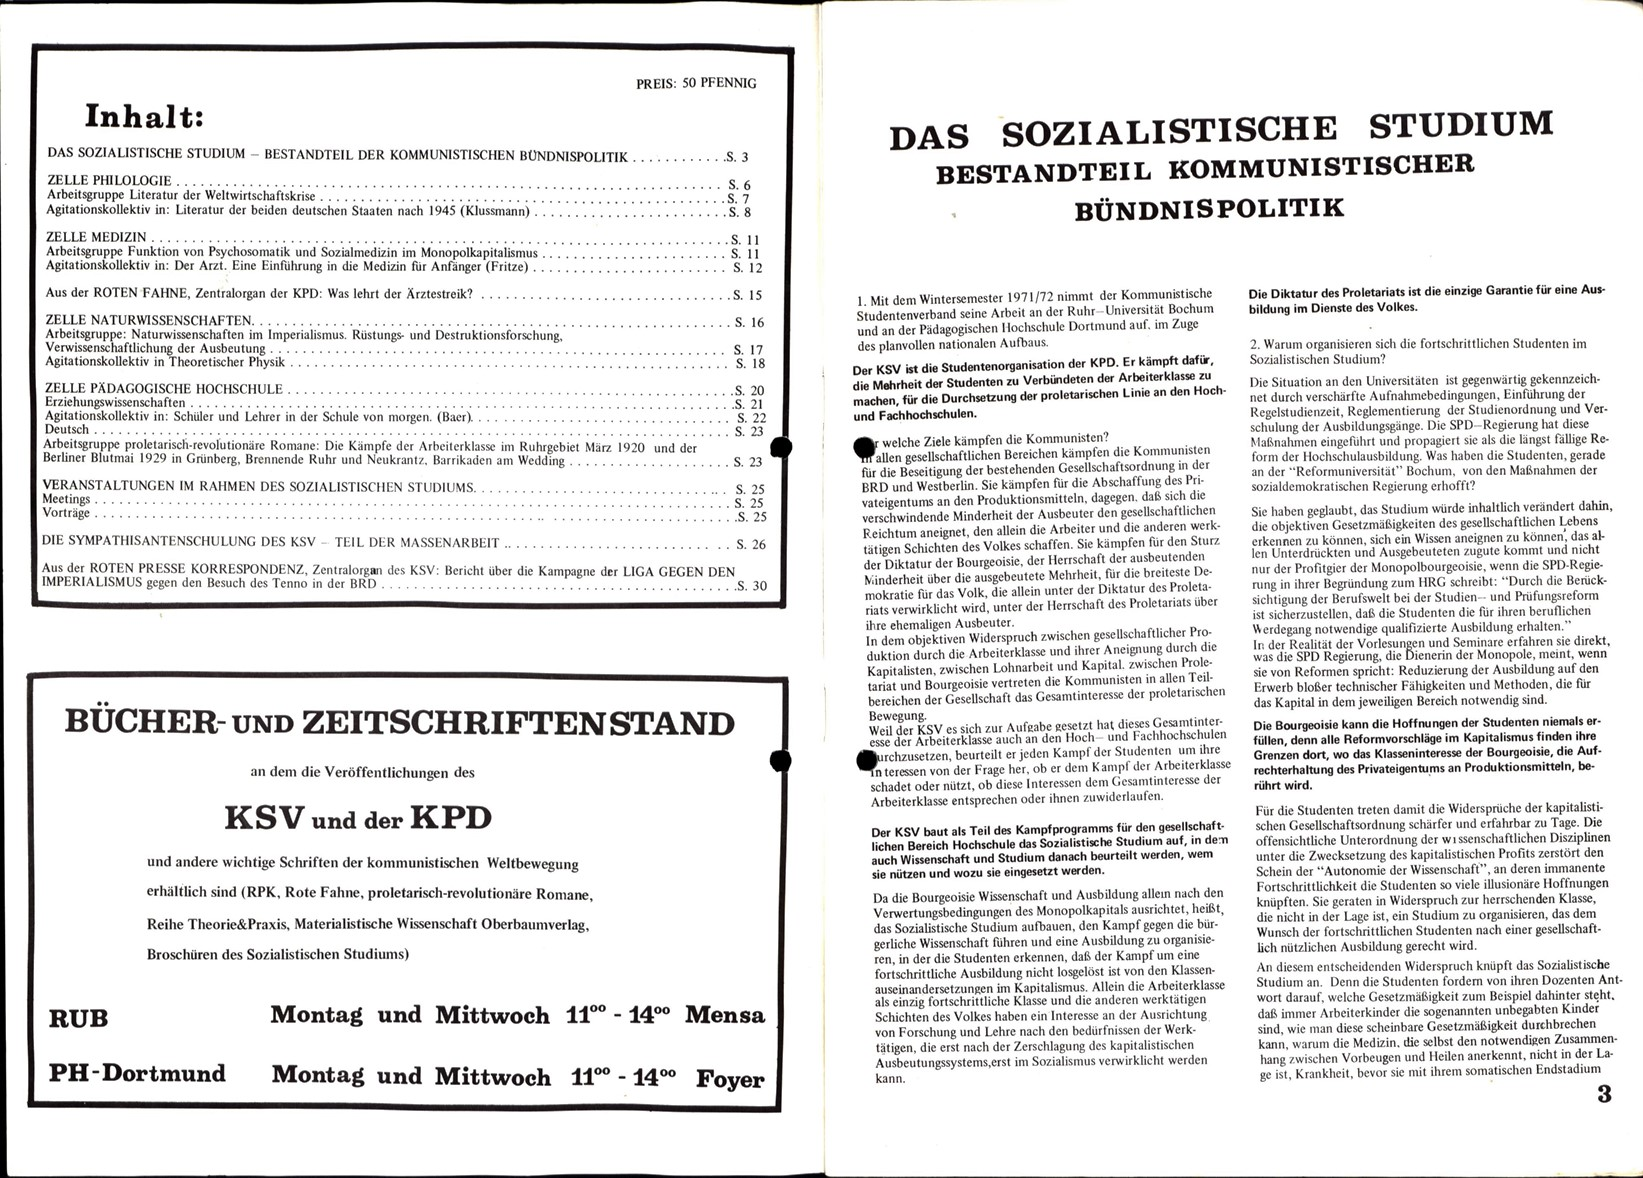 BO_DO_KSV_1971_Programm_Sozialistisches_Studium_02